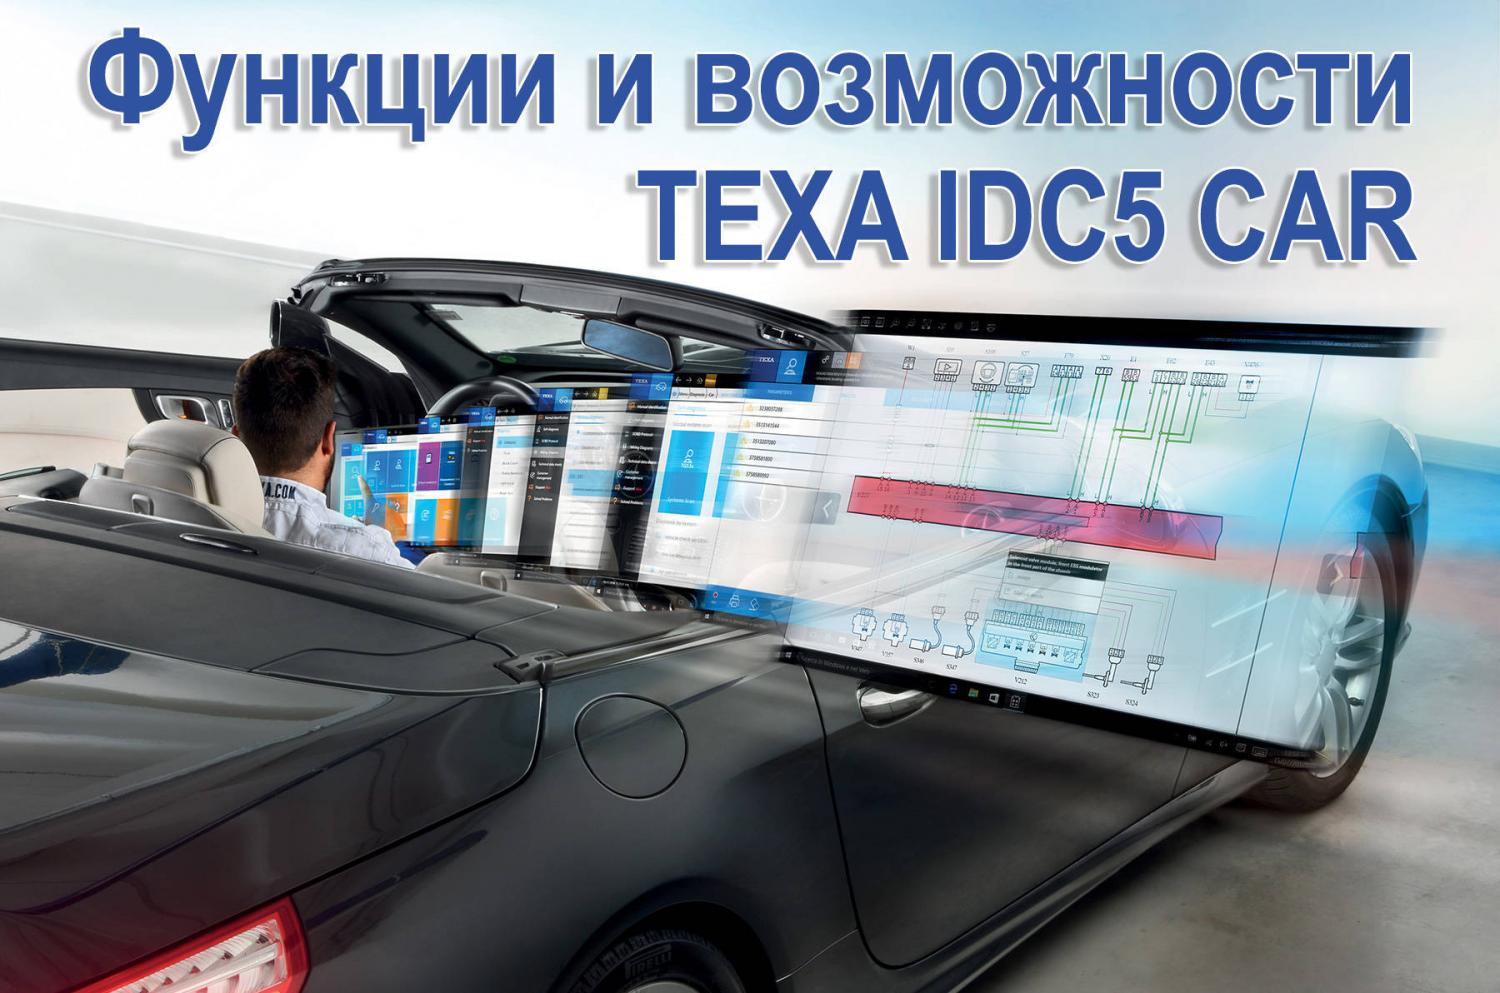 Программное обеспечение TEXA IDC5 CAR